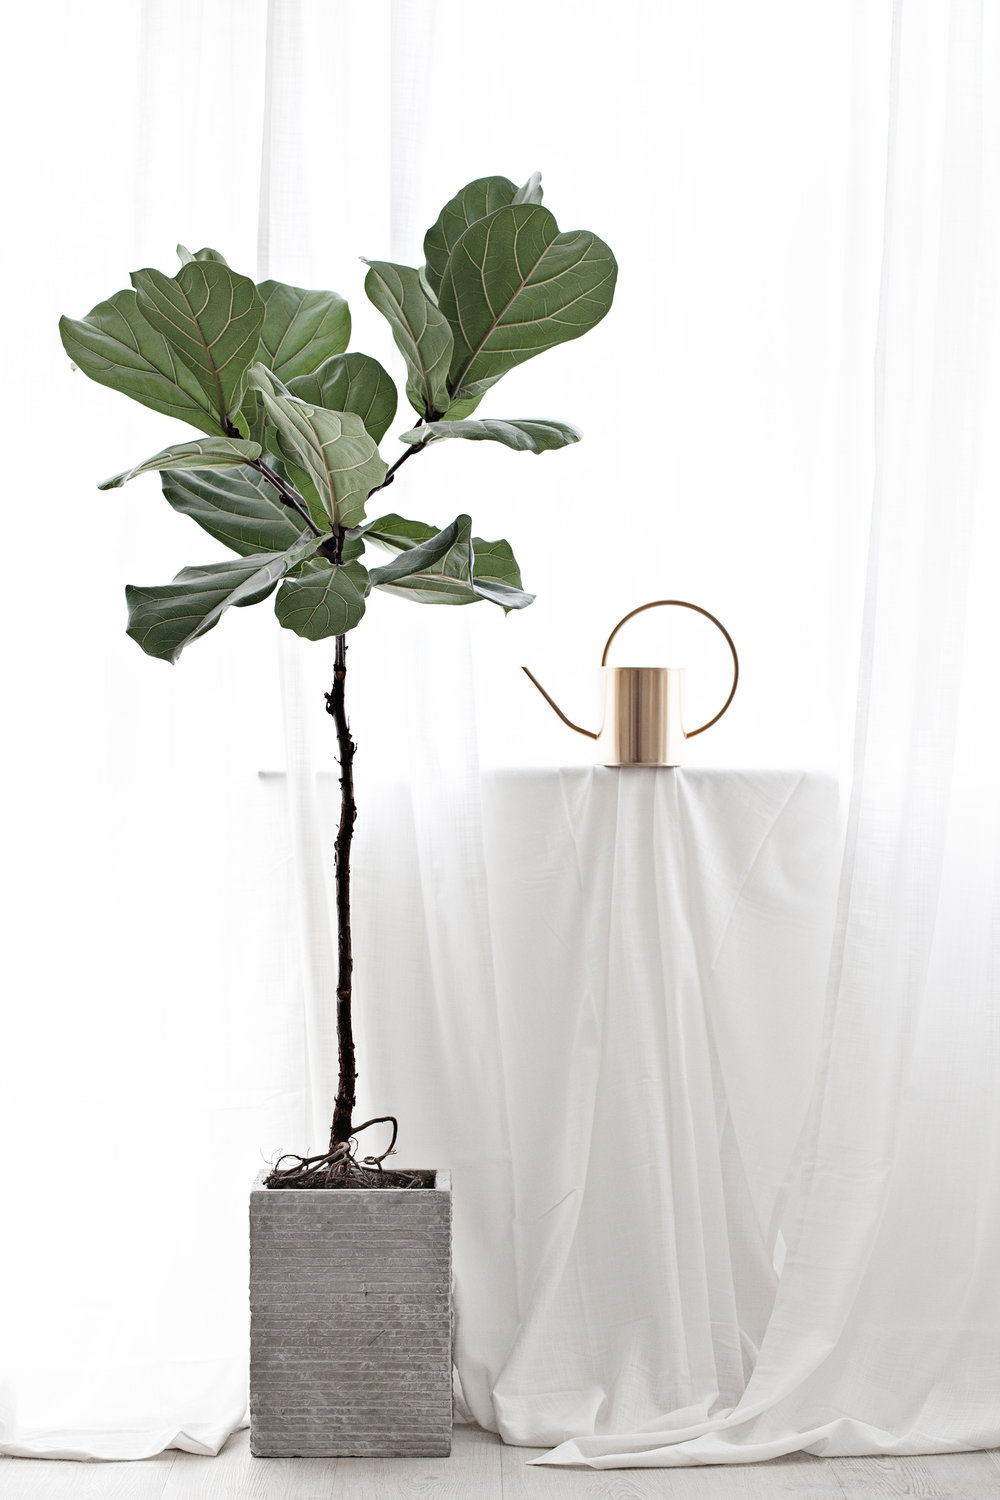 Ficus Lyrata | Fiddle Fig Tree | Linen Curtains | Brass Watering Can from H&M